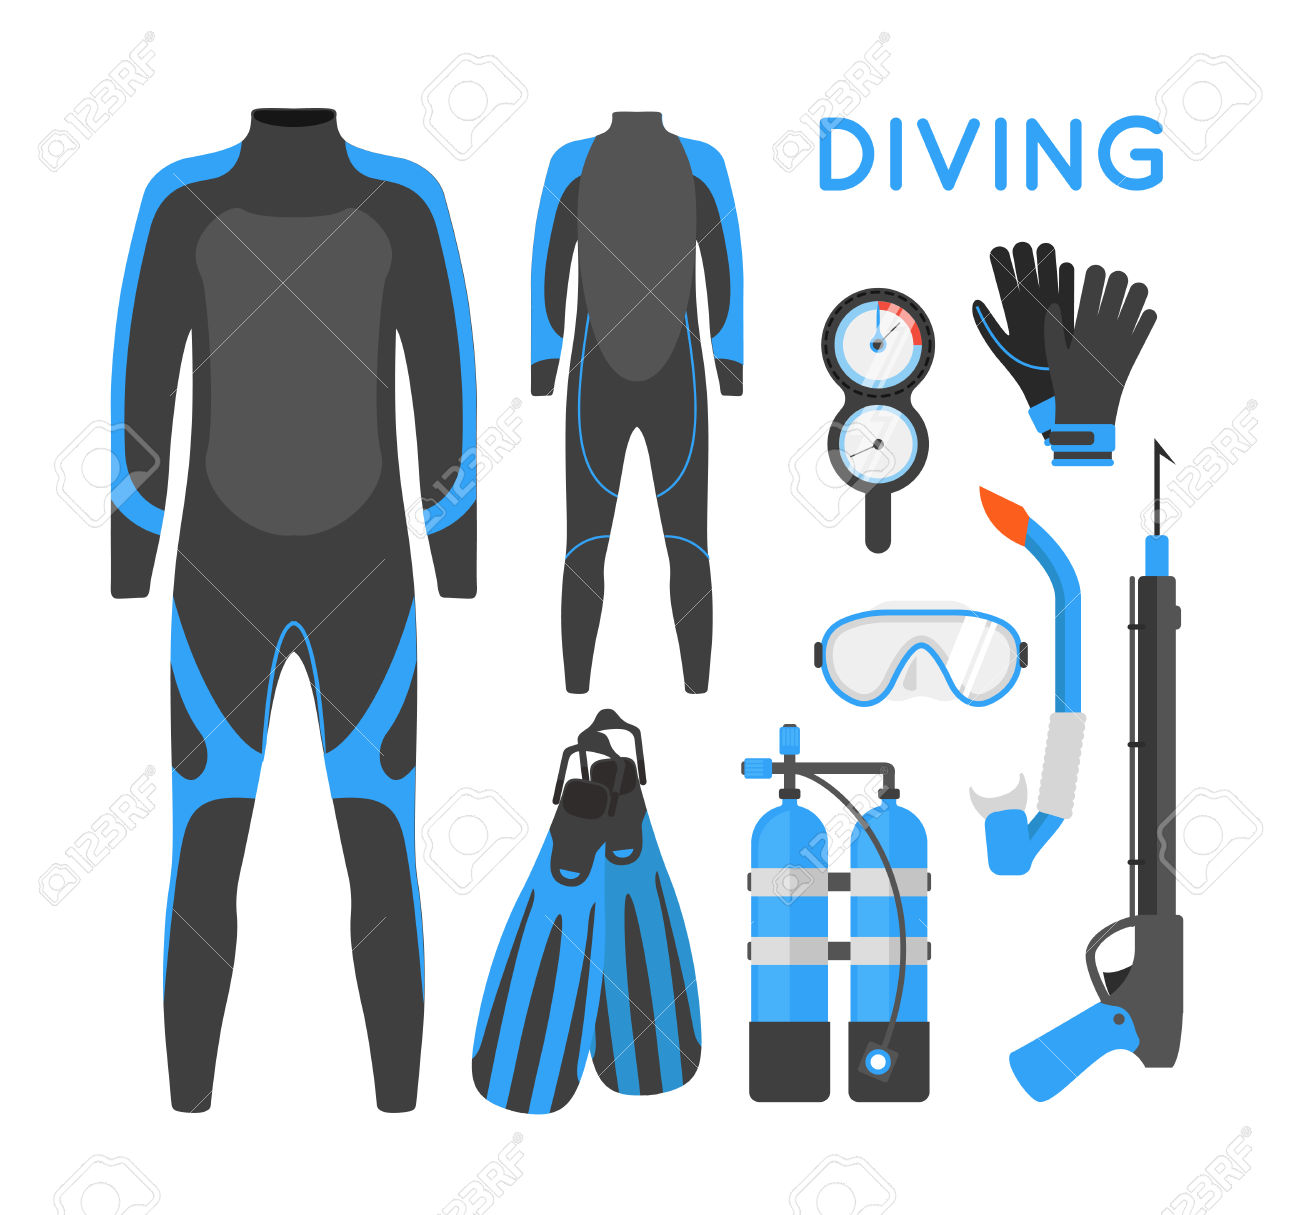 Diving Equipment. Diving Mask. Diving Snorkel. Diving Oxygen.